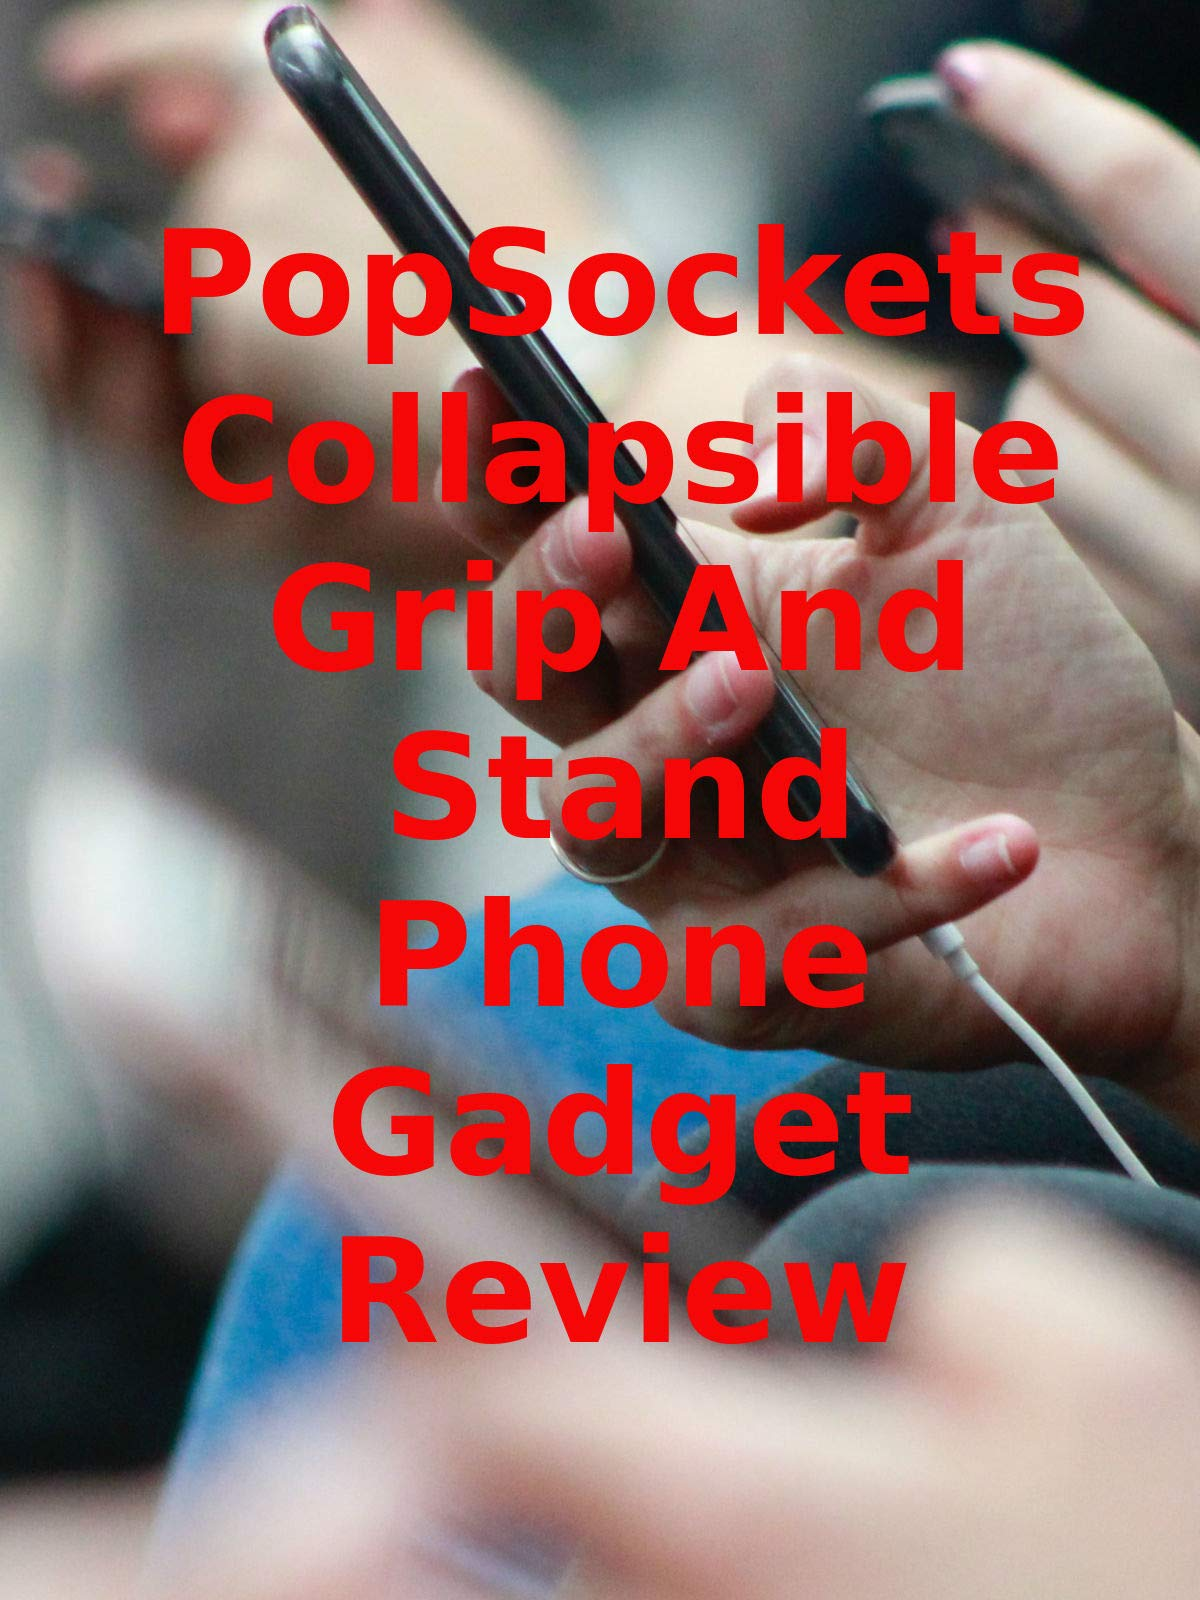 Review: PopSockets Collapsible Grip And Stand Phone Gadget Review on Amazon Prime Instant Video UK